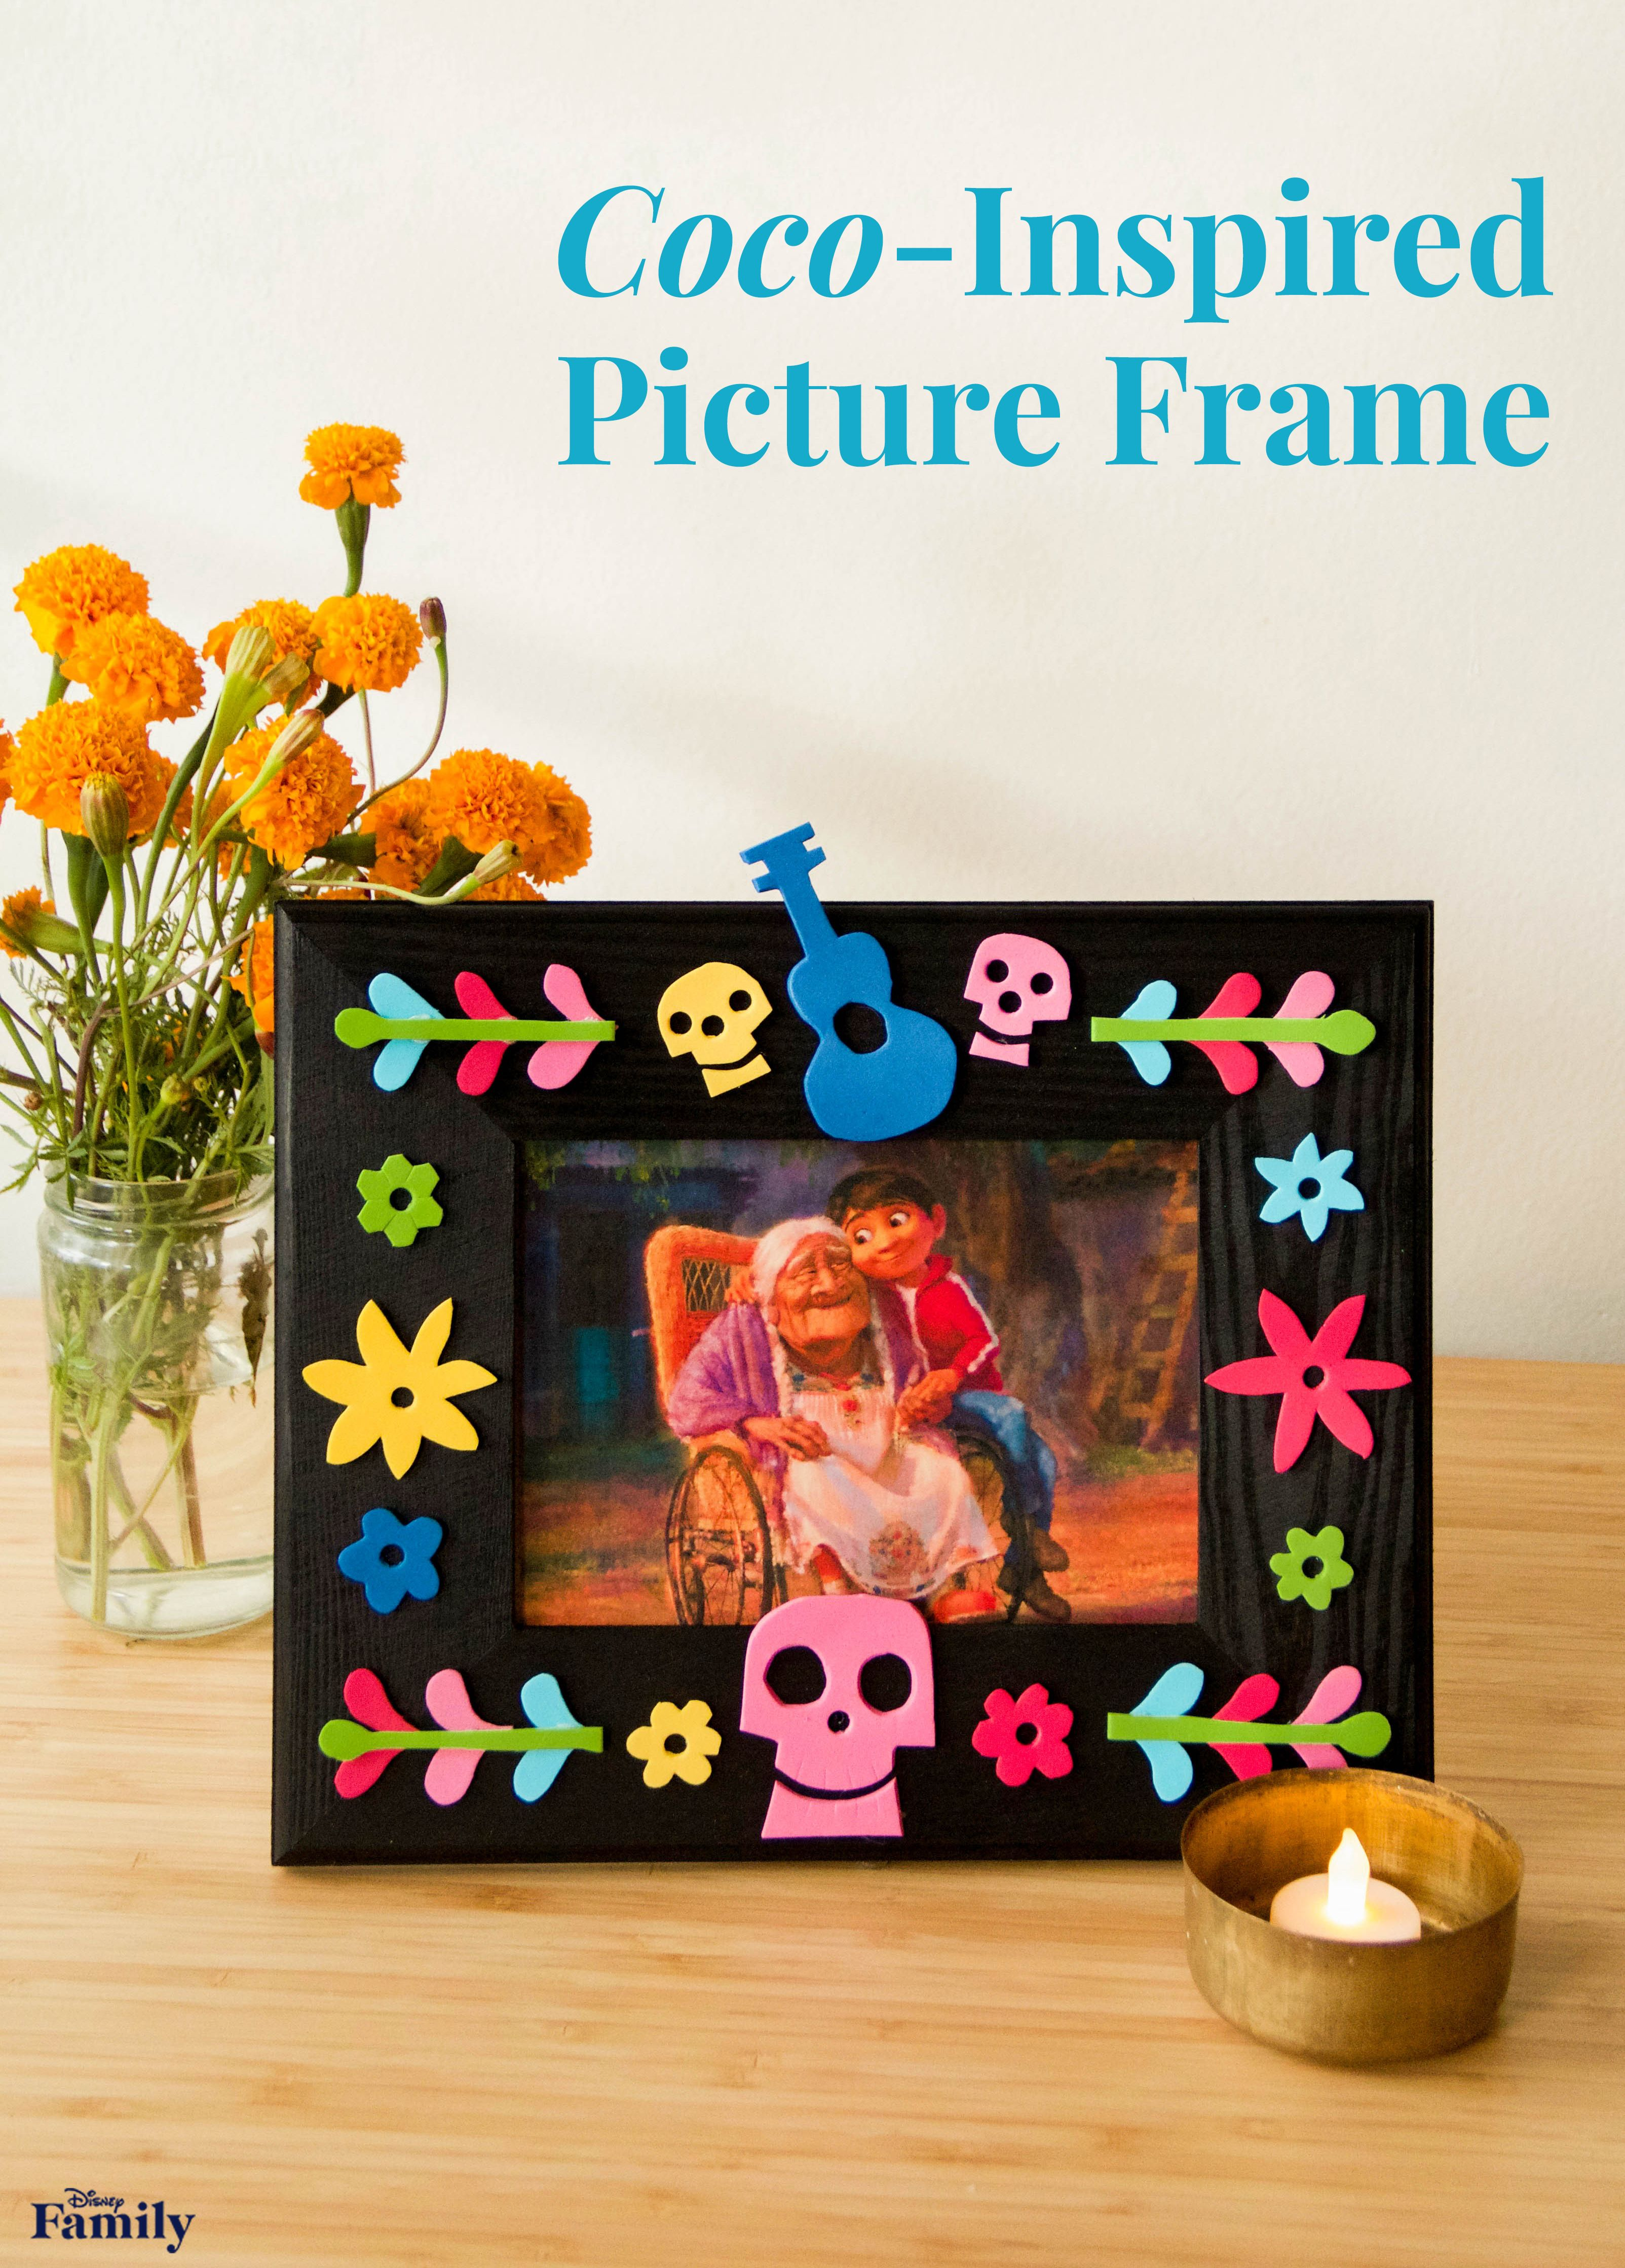 Show Your Love For Coco And Your Family With This Diy Frame